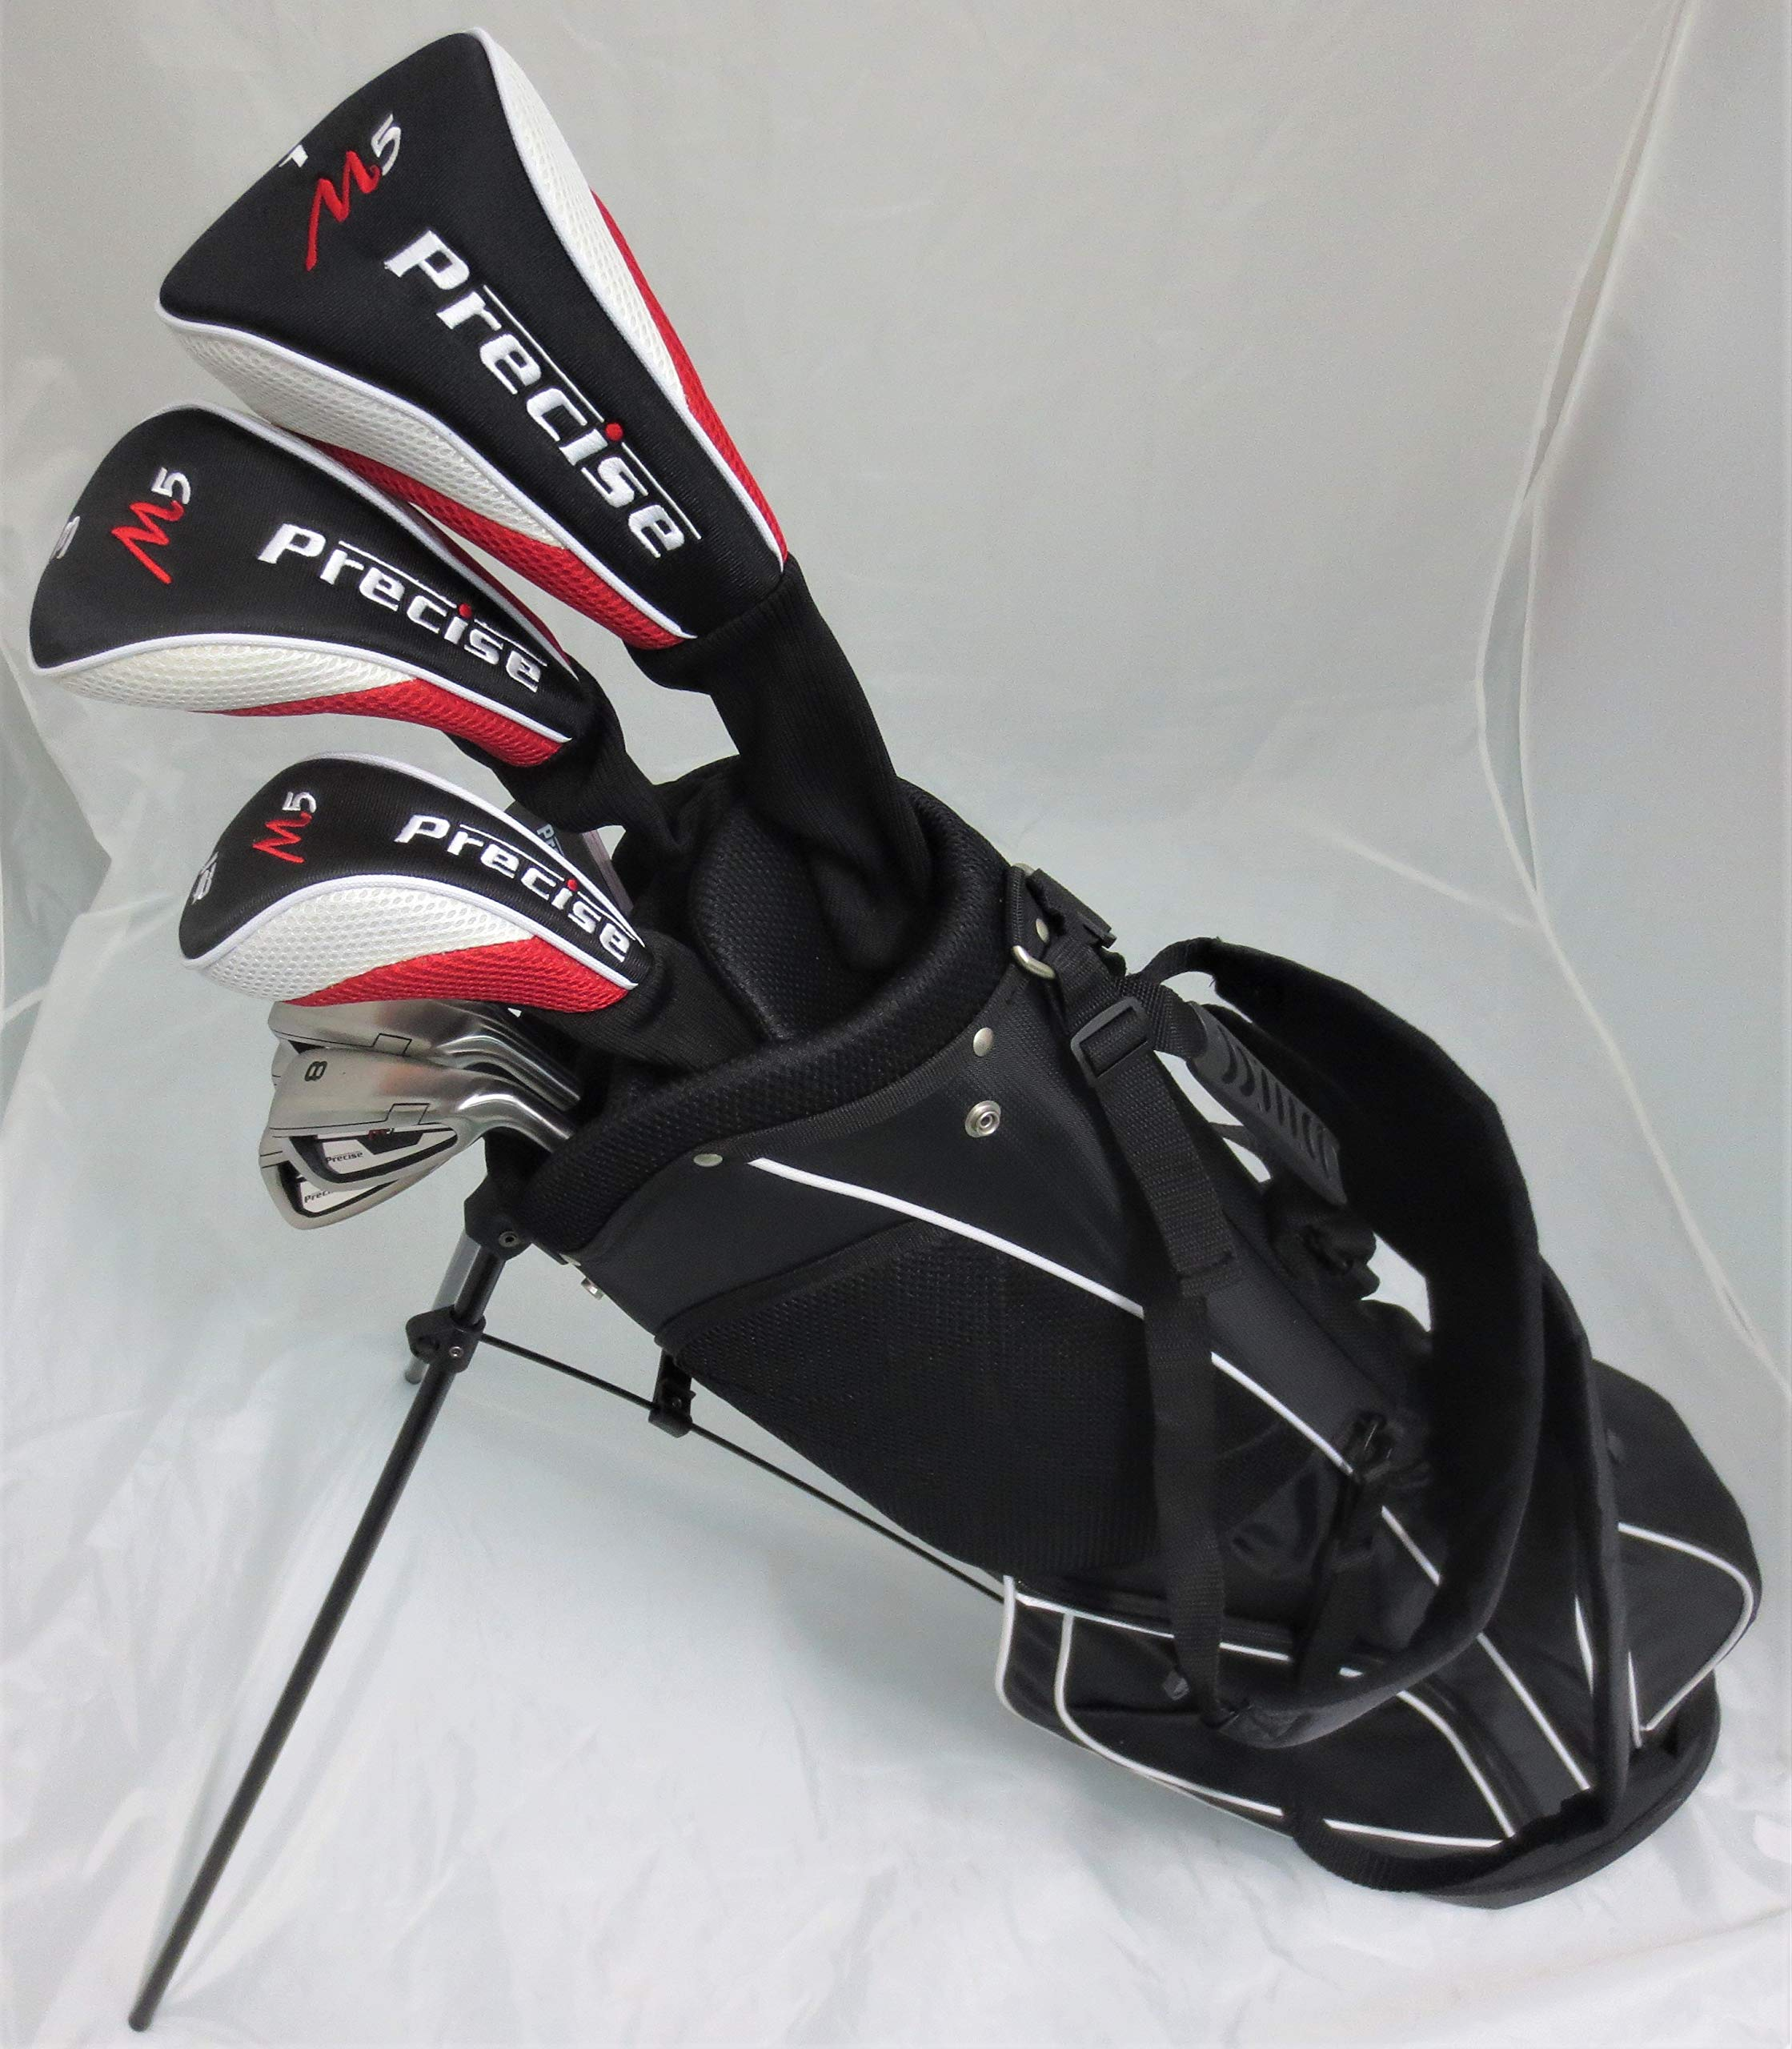 Tartan Sports New Teen Golf Club Set Complete with Stand Bag for Teenagers Ages 13-16 Driver, Wood Hybrid, Irons Putter by Tartan Sports (Image #1)